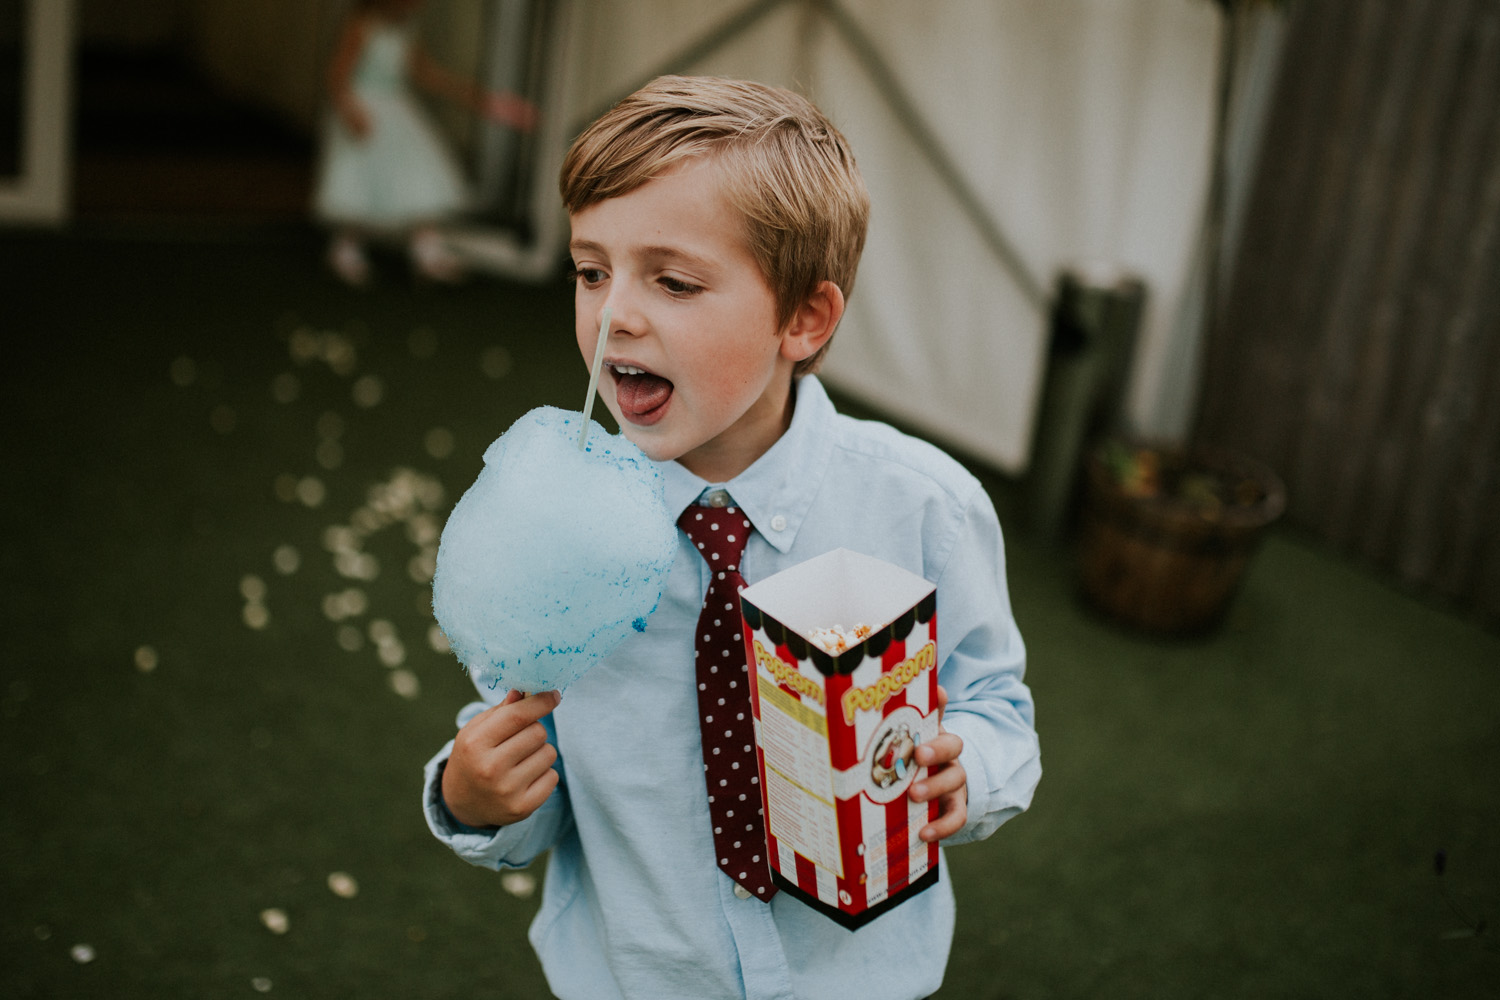 little boy with candy floss